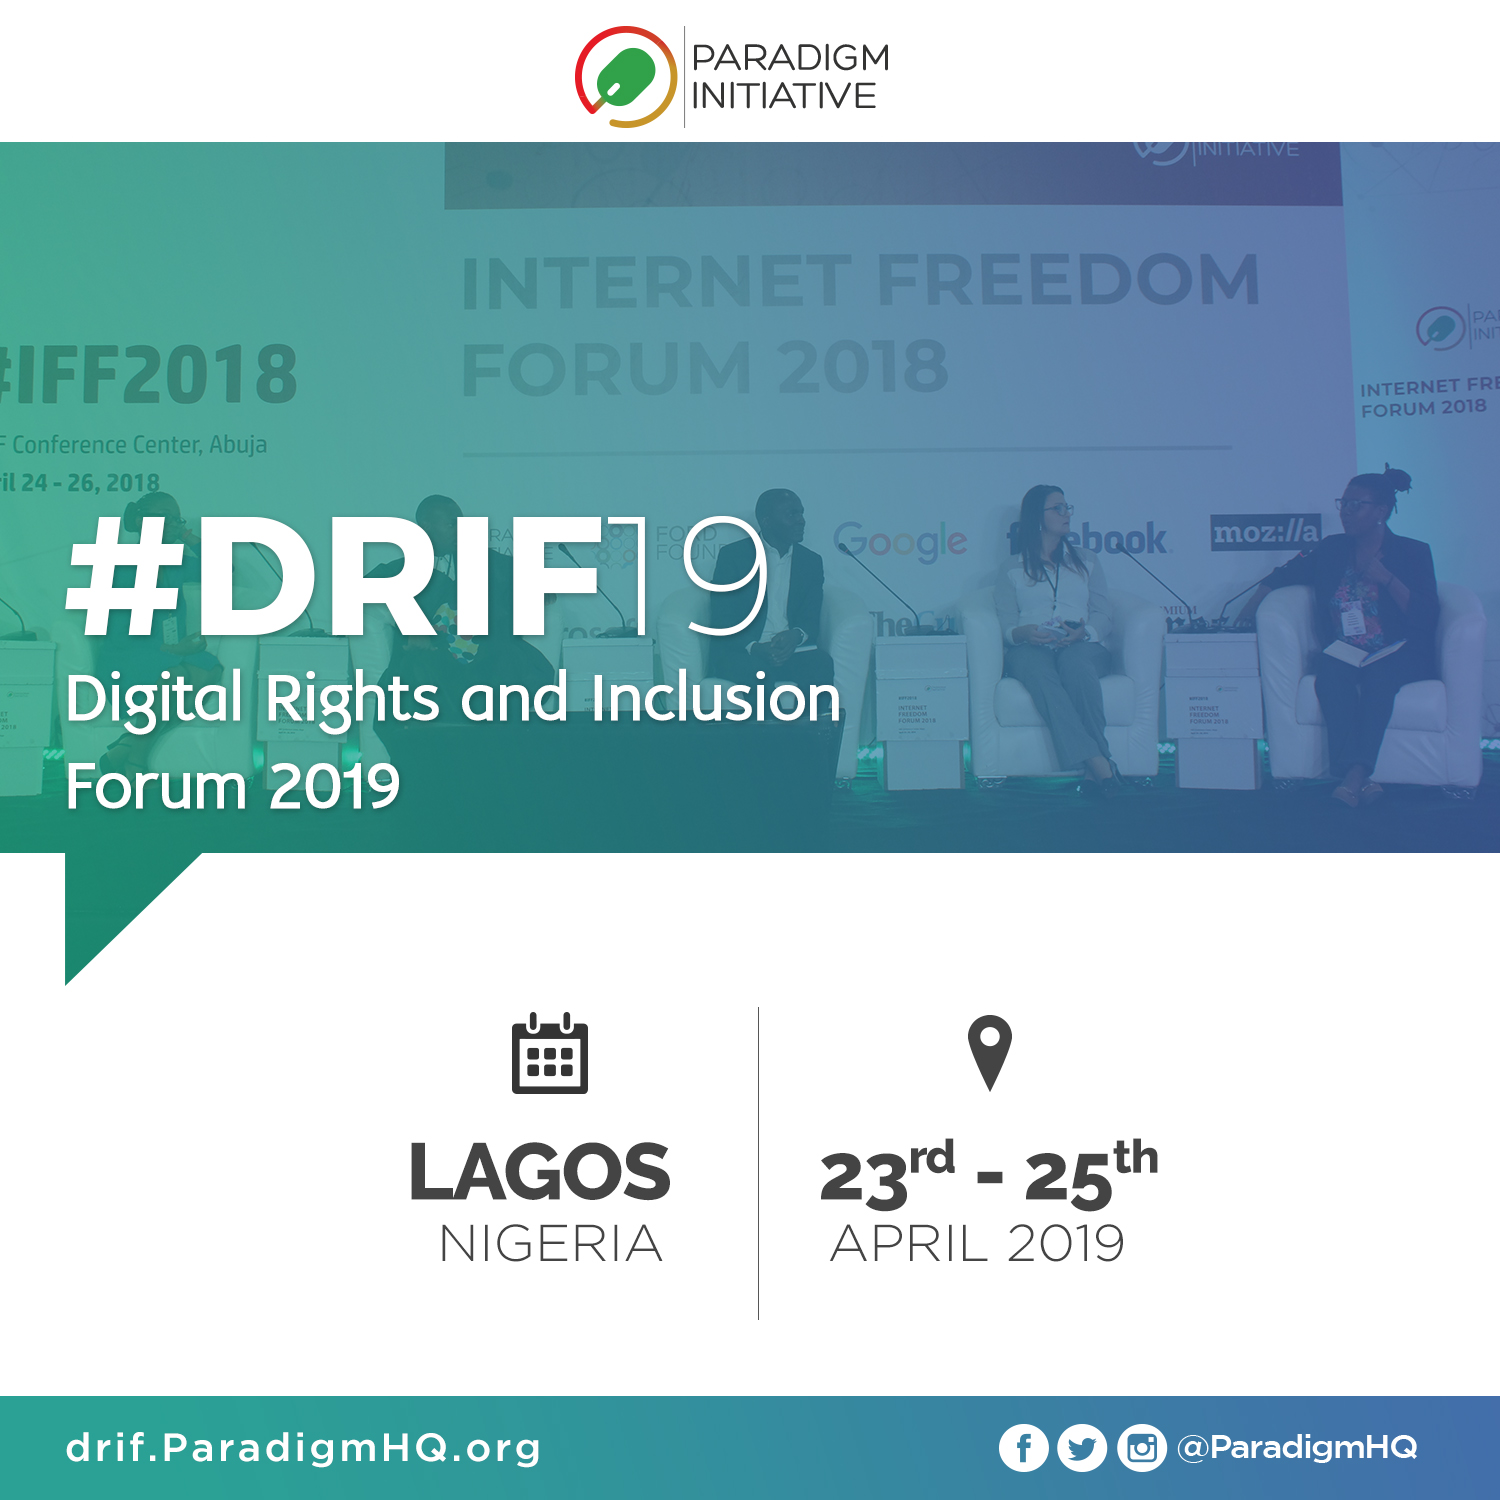 Call for Registration: Digital Rights and Inclusion Forum